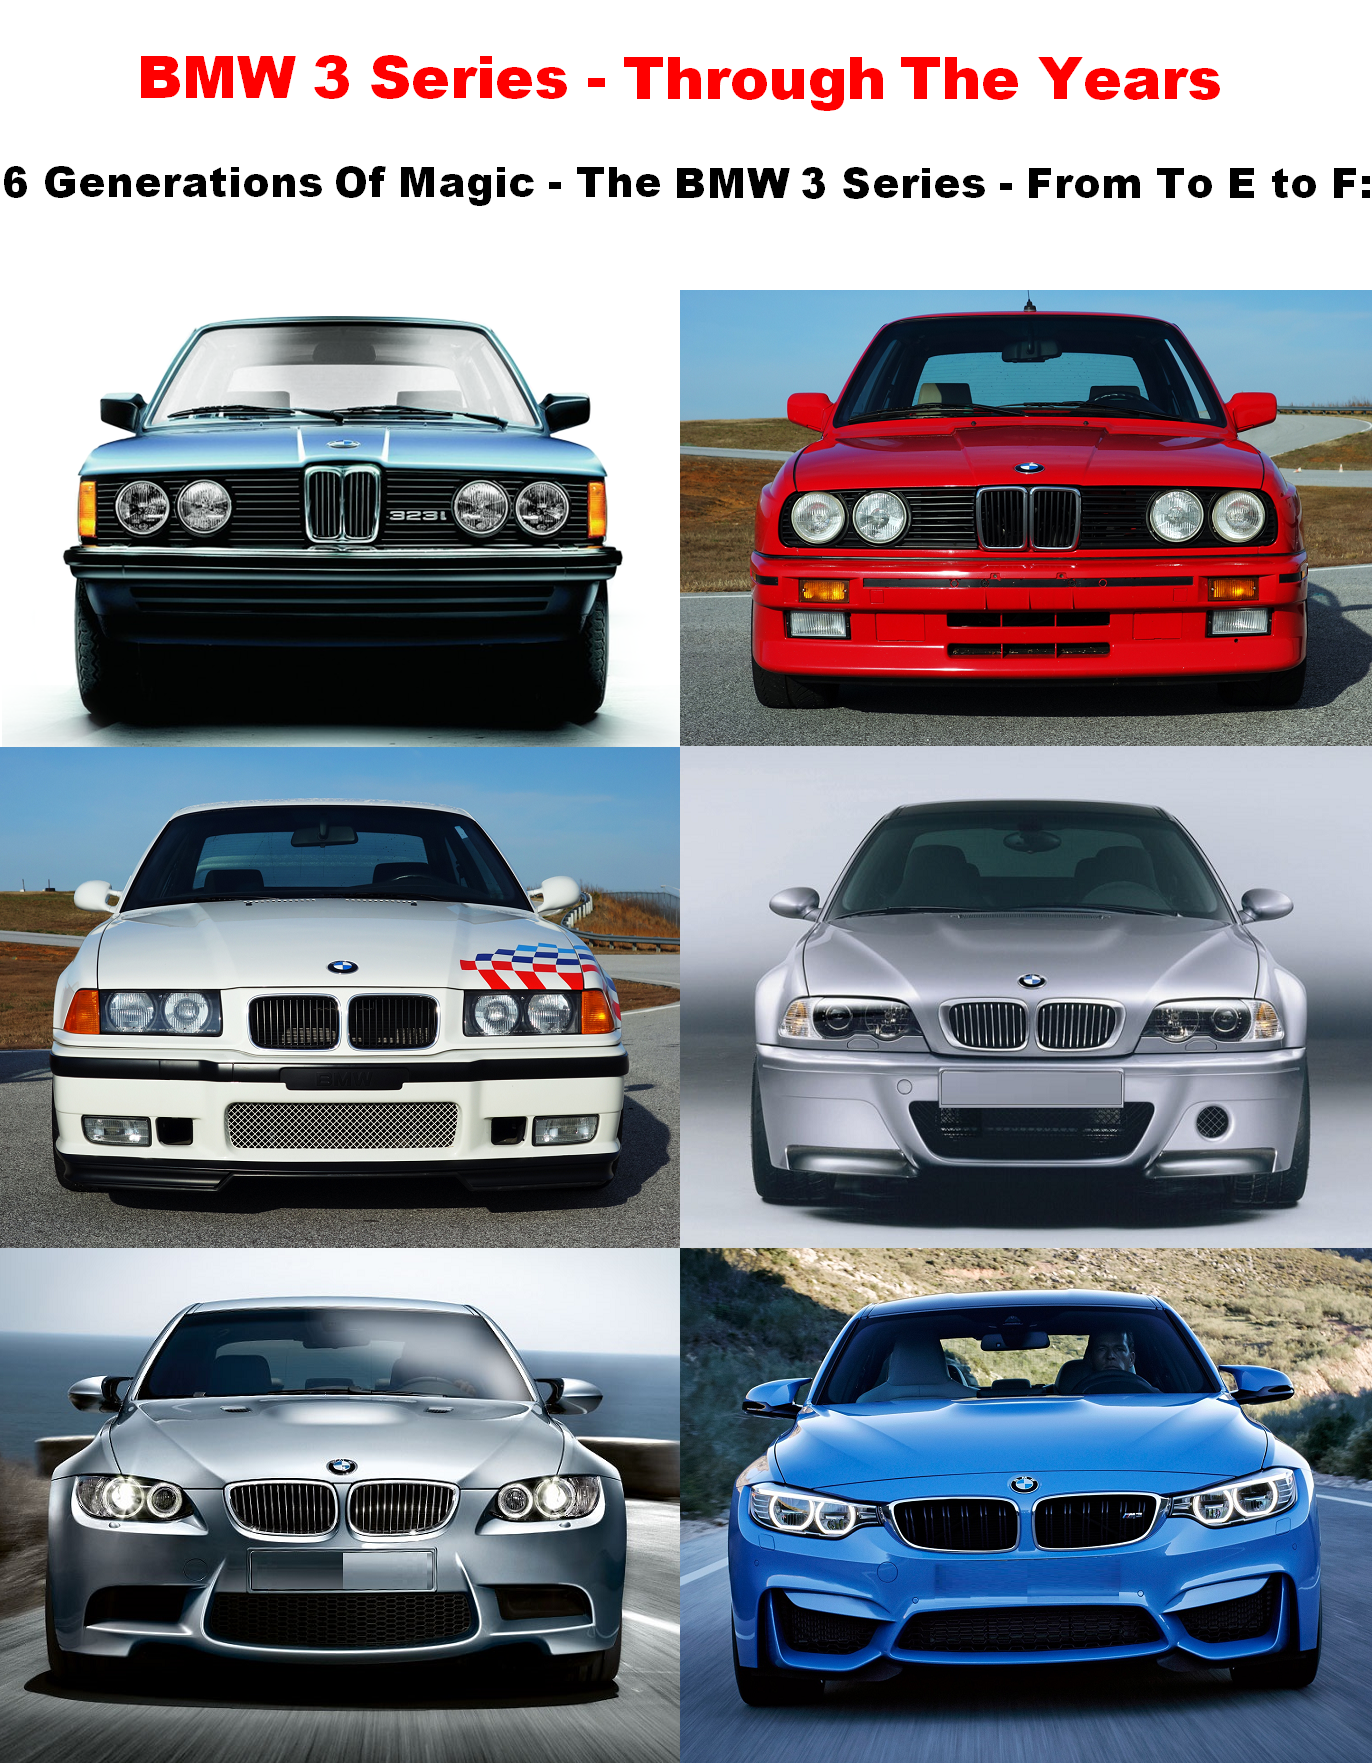 Experience The Bmw 3 Series Through Years 6 Generations Of Total Magic From